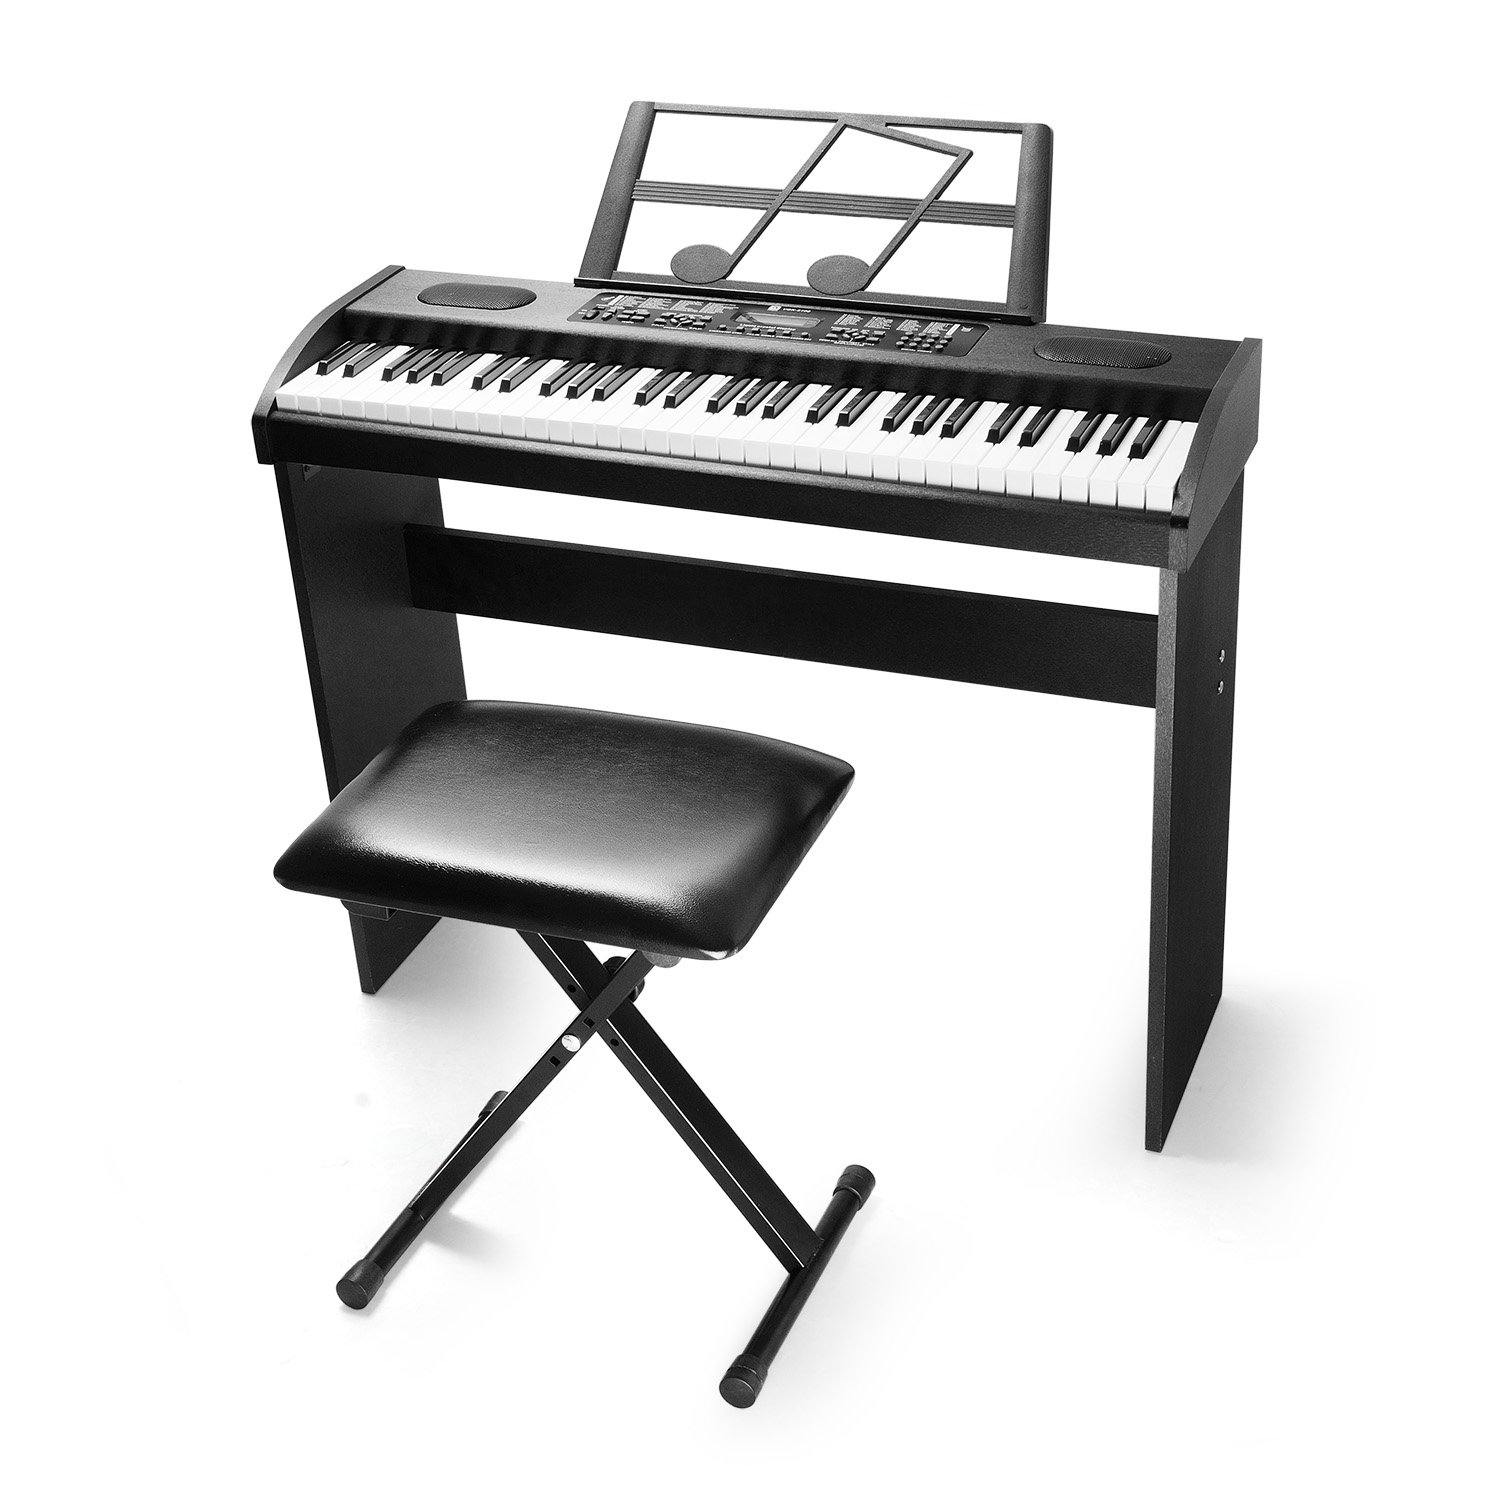 Vangoa VGK6100 61-Key Electronic Piano Keyboard, LCD Display Music with Stand and X-Style Bench, Black